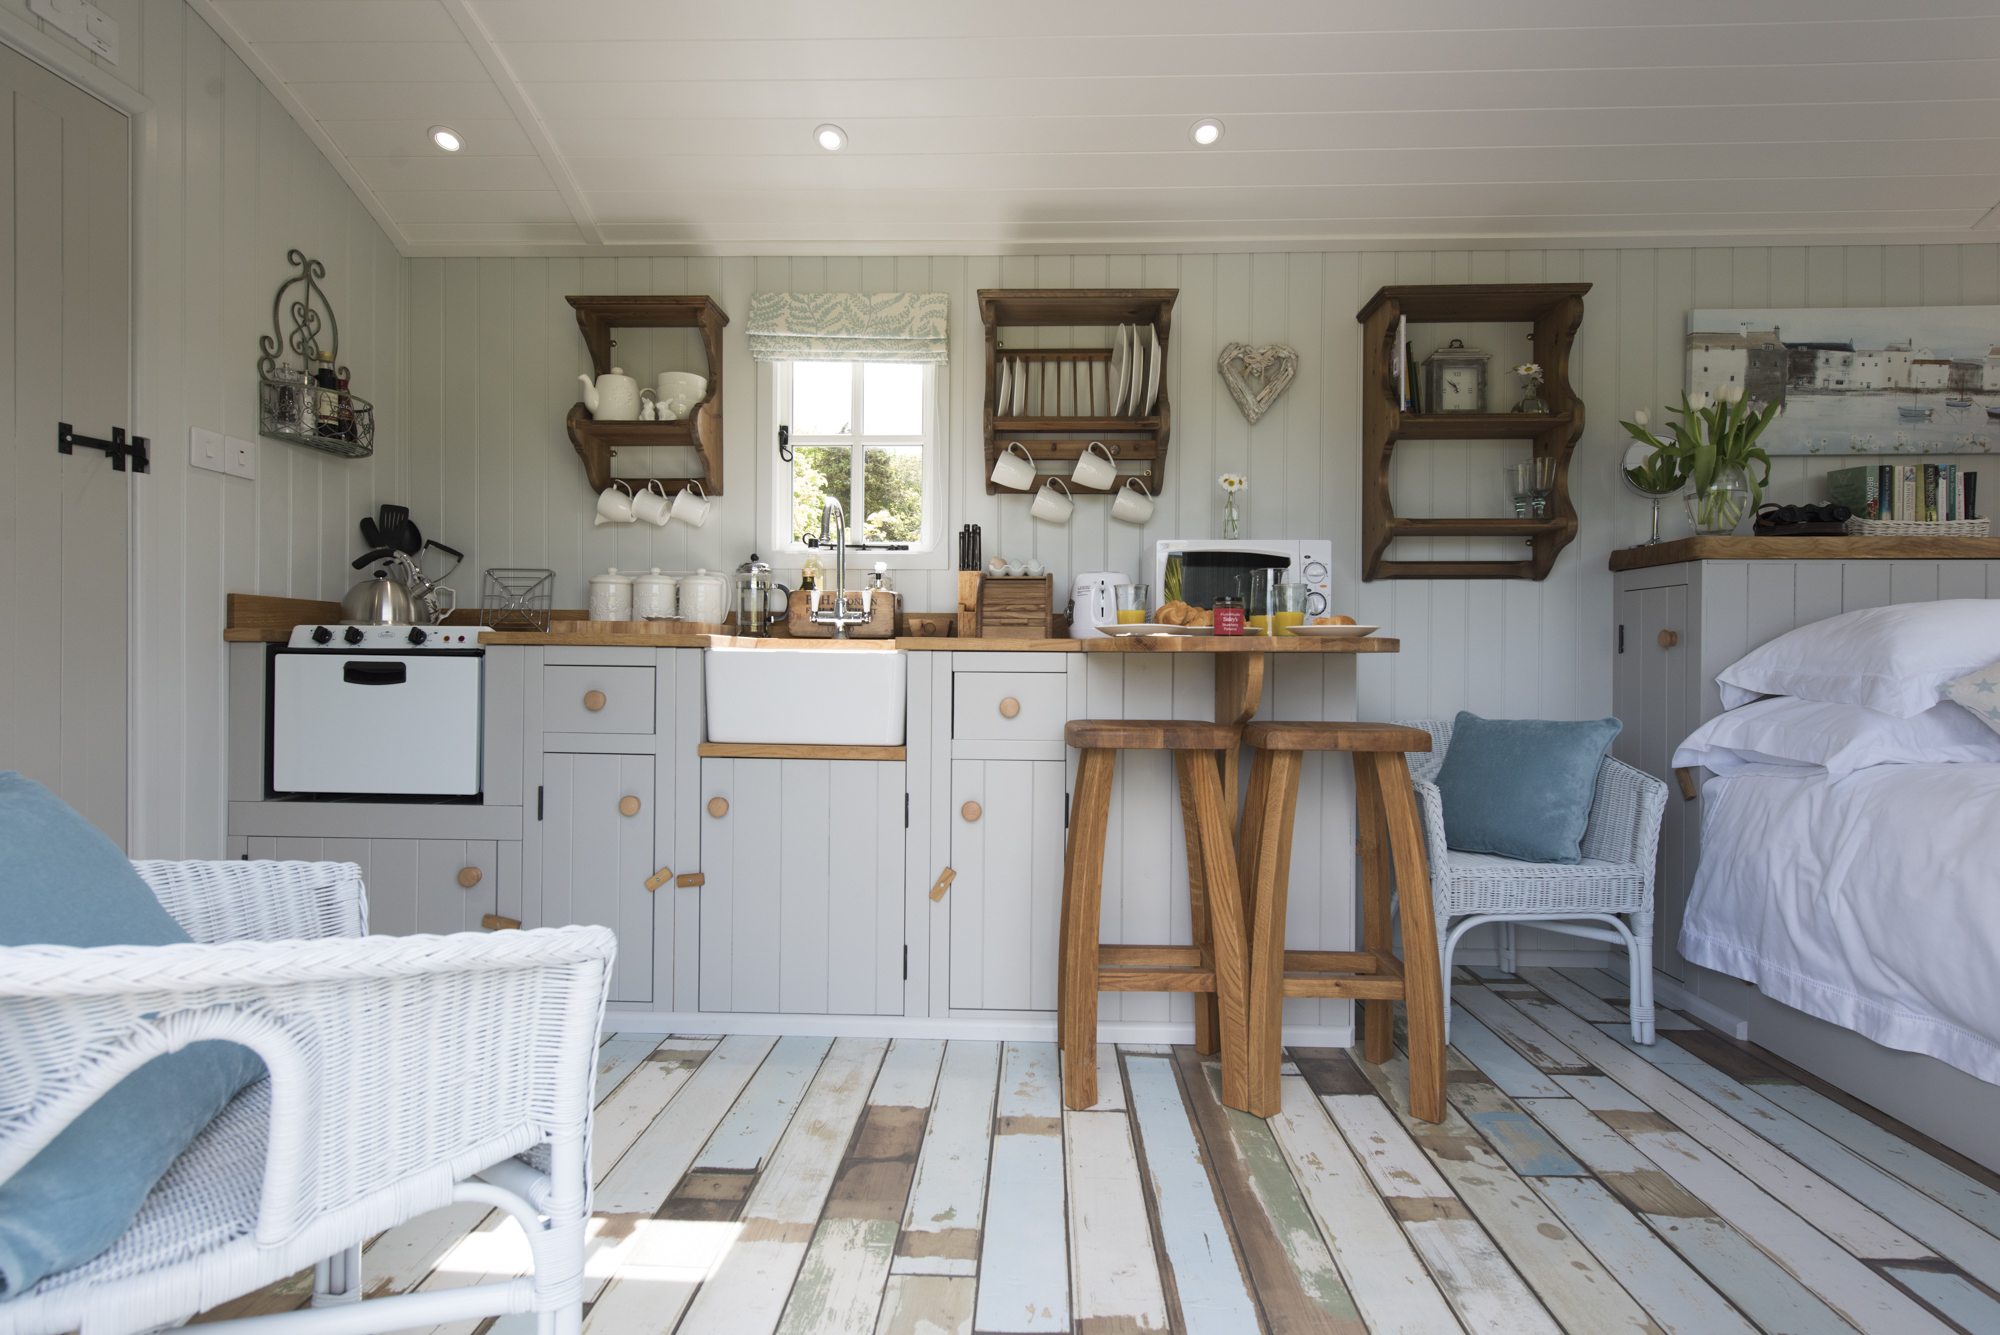 Shepherds Hut Heaven Cornwall Interiors